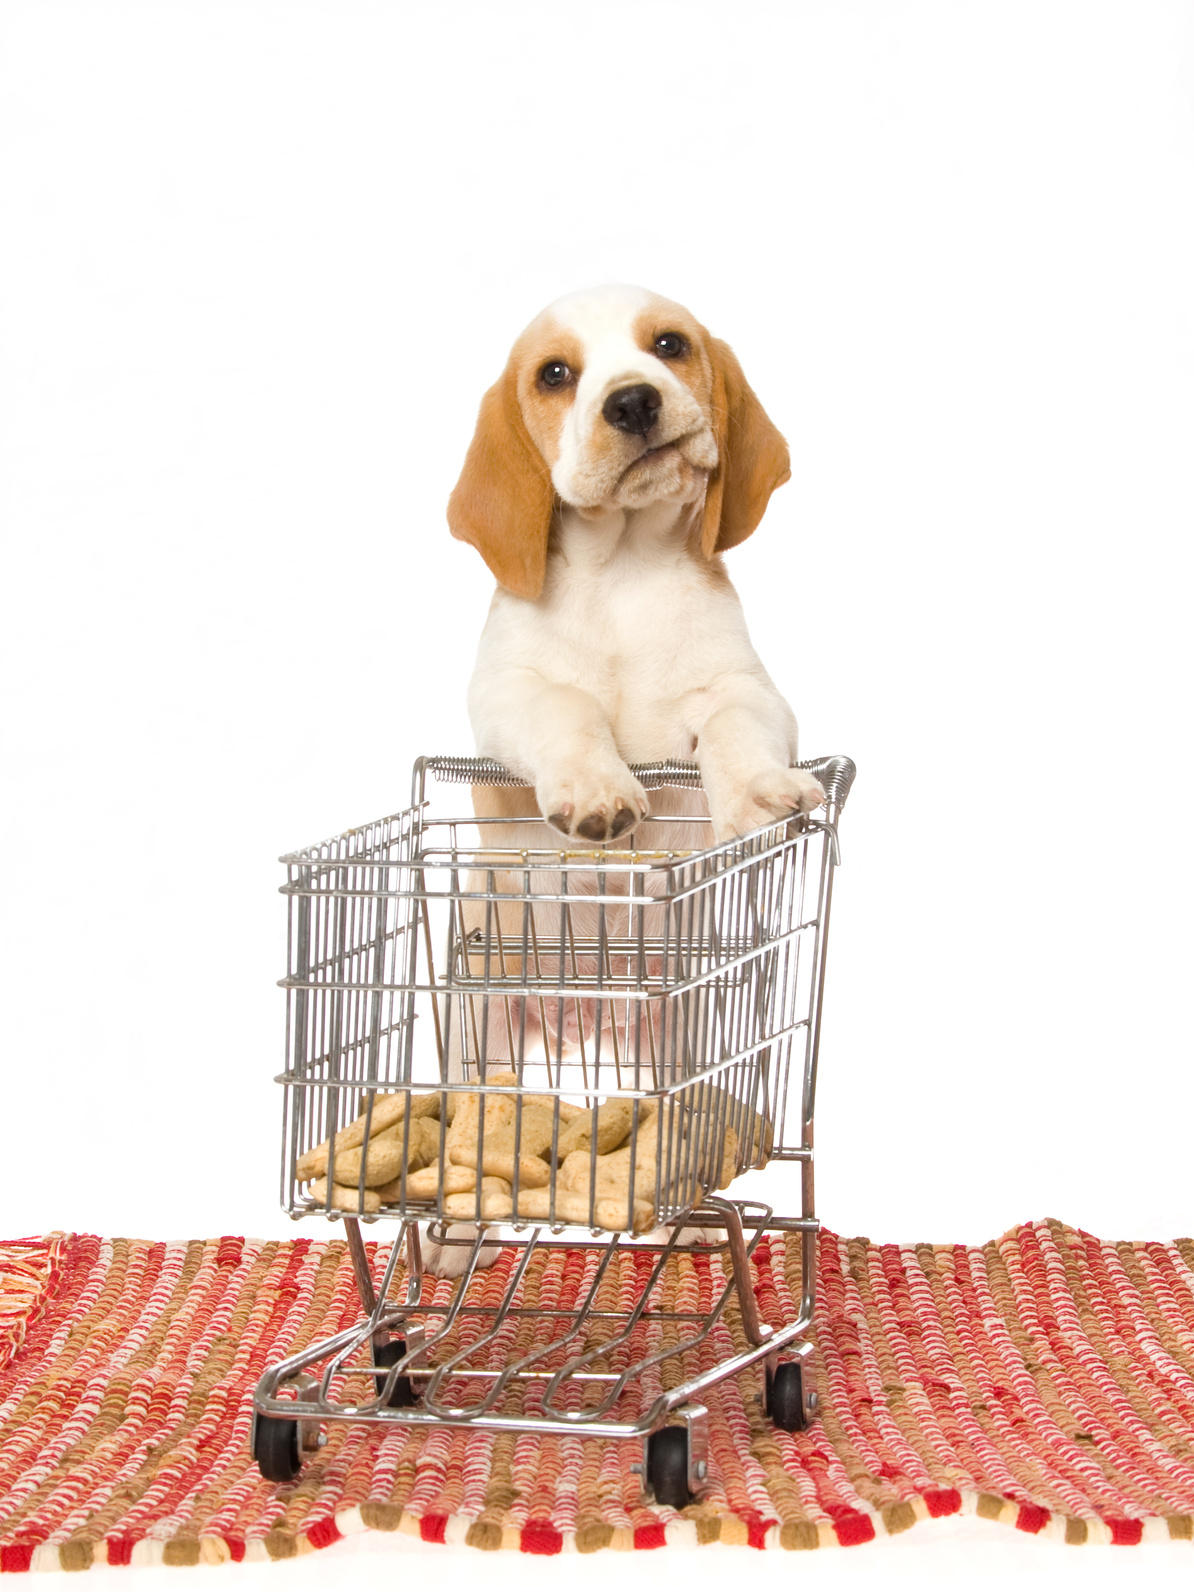 Cute beagle puppy with mini shopping cart, on white background